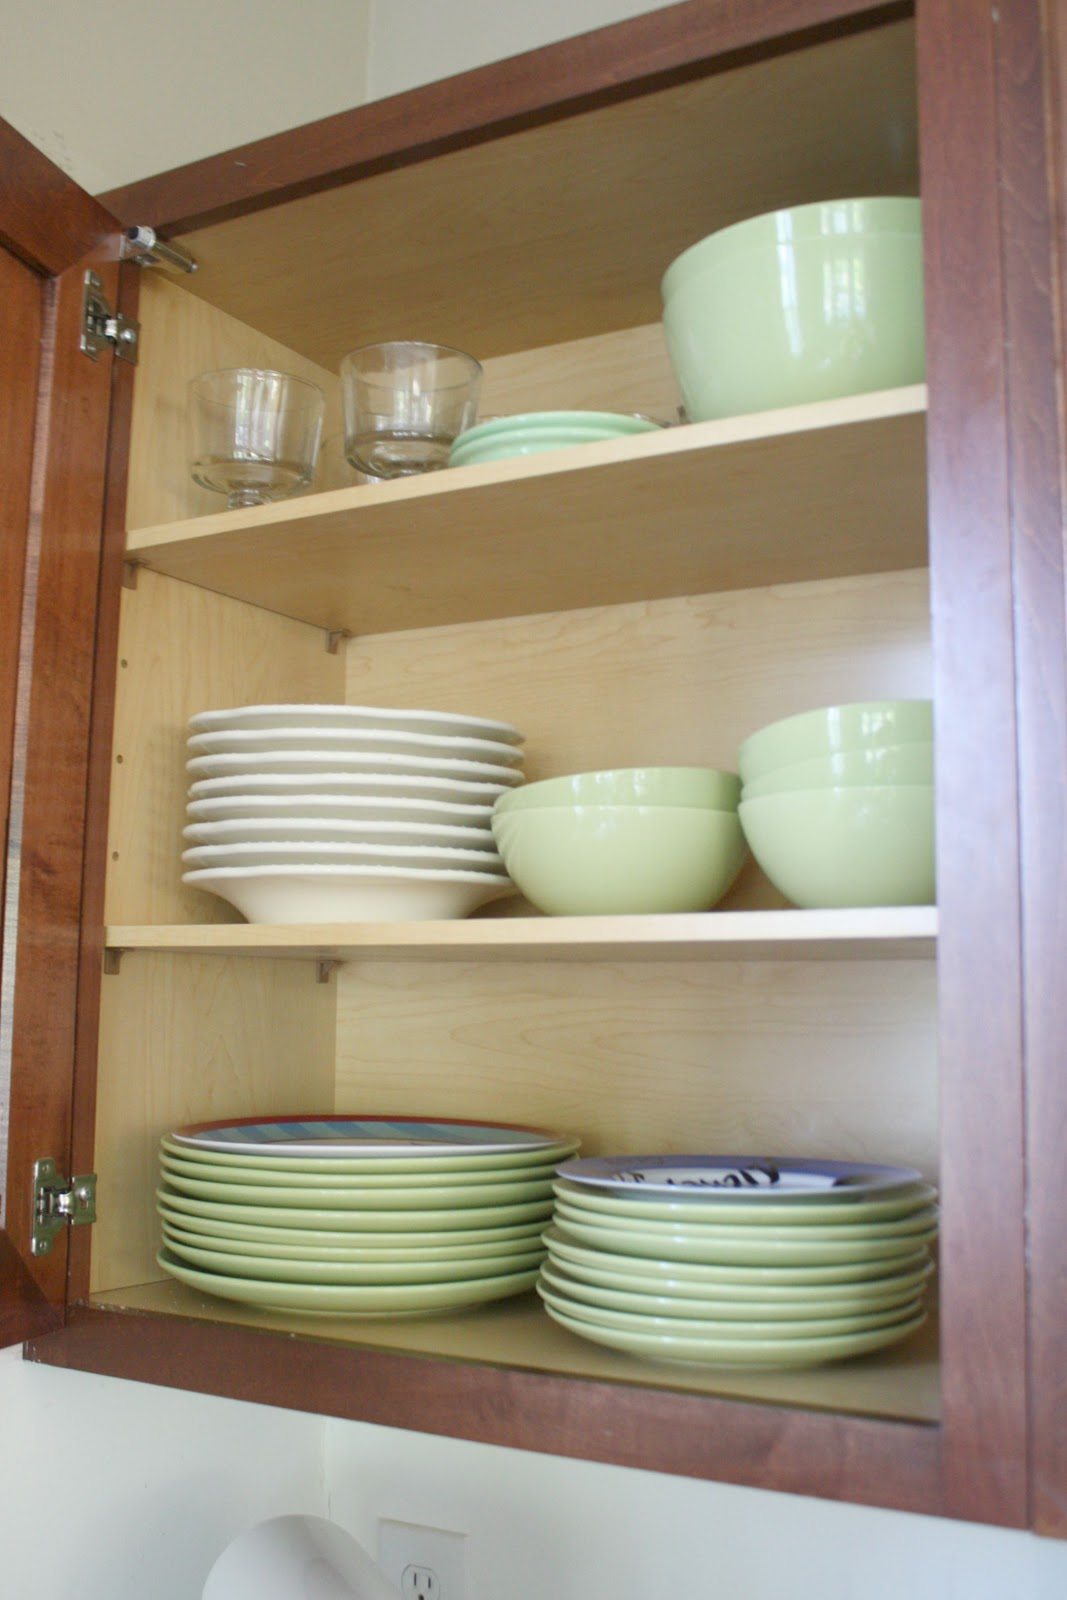 green ikea dishes